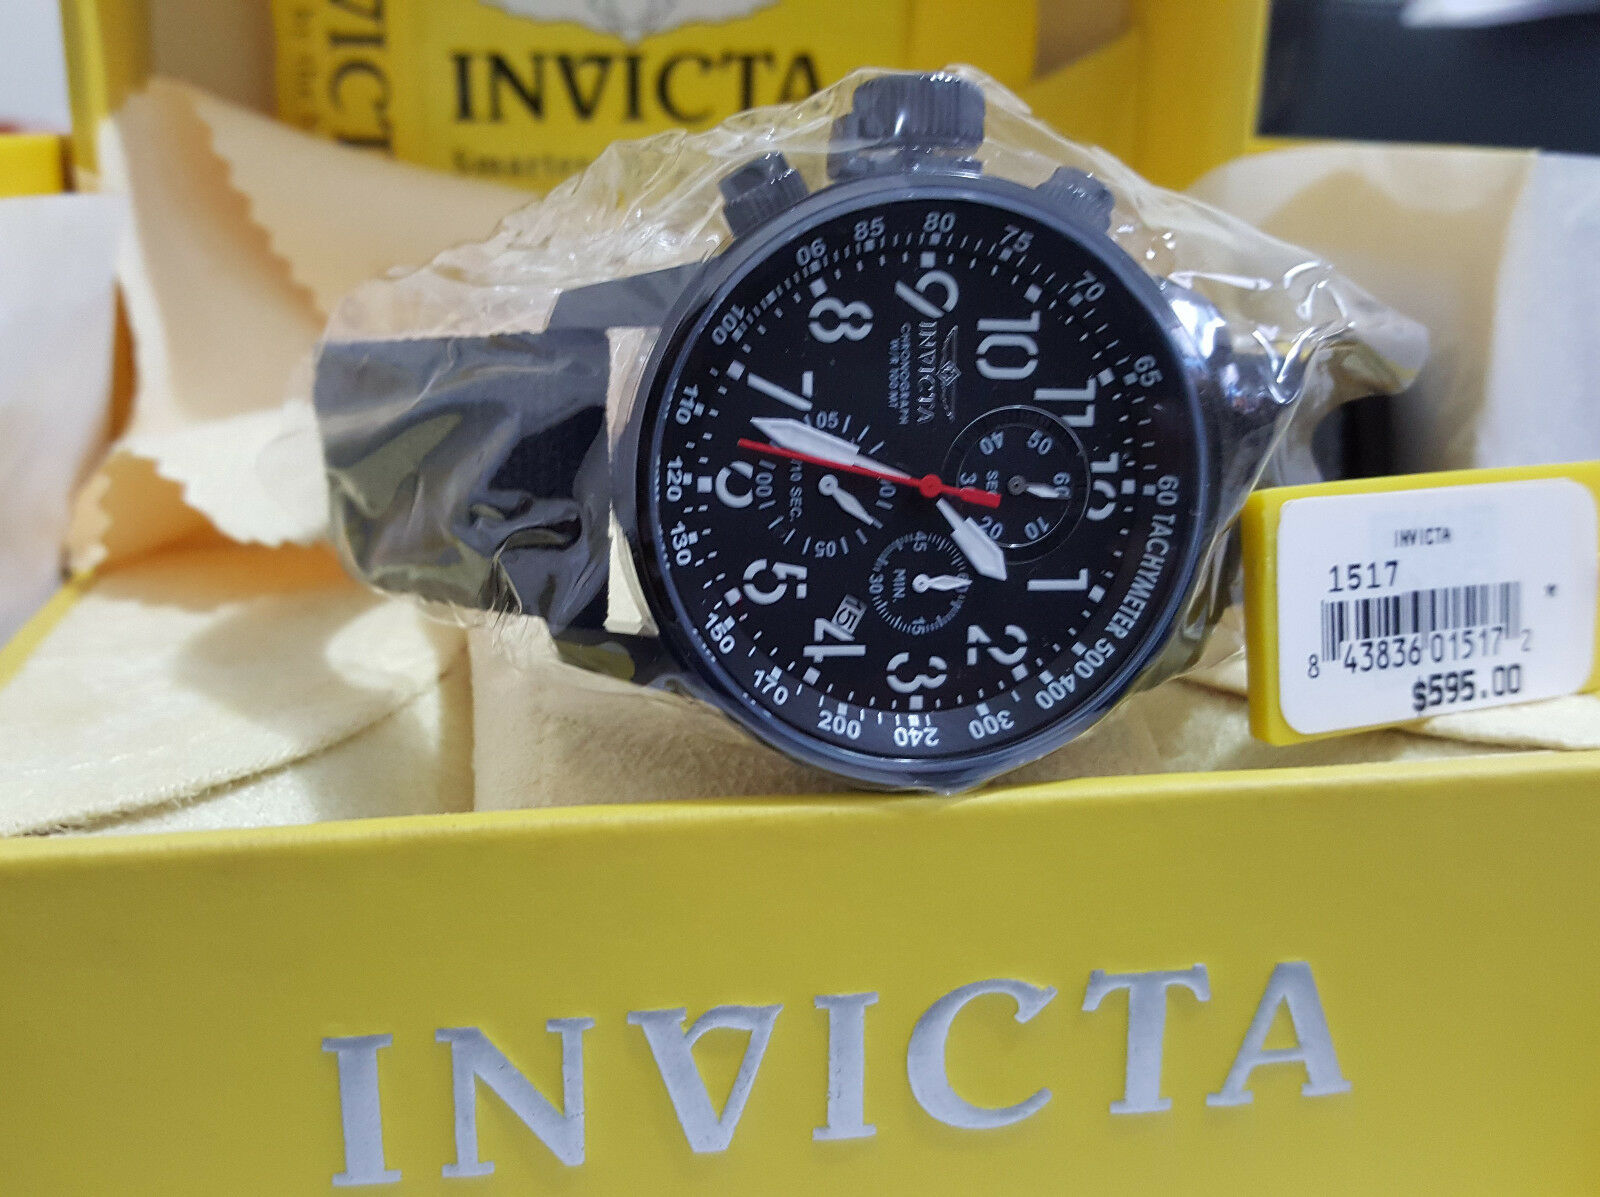 Discussion on this topic: Invicta 1517 I Force Chronograph Watch, invicta-1517-i-force-chronograph-watch/